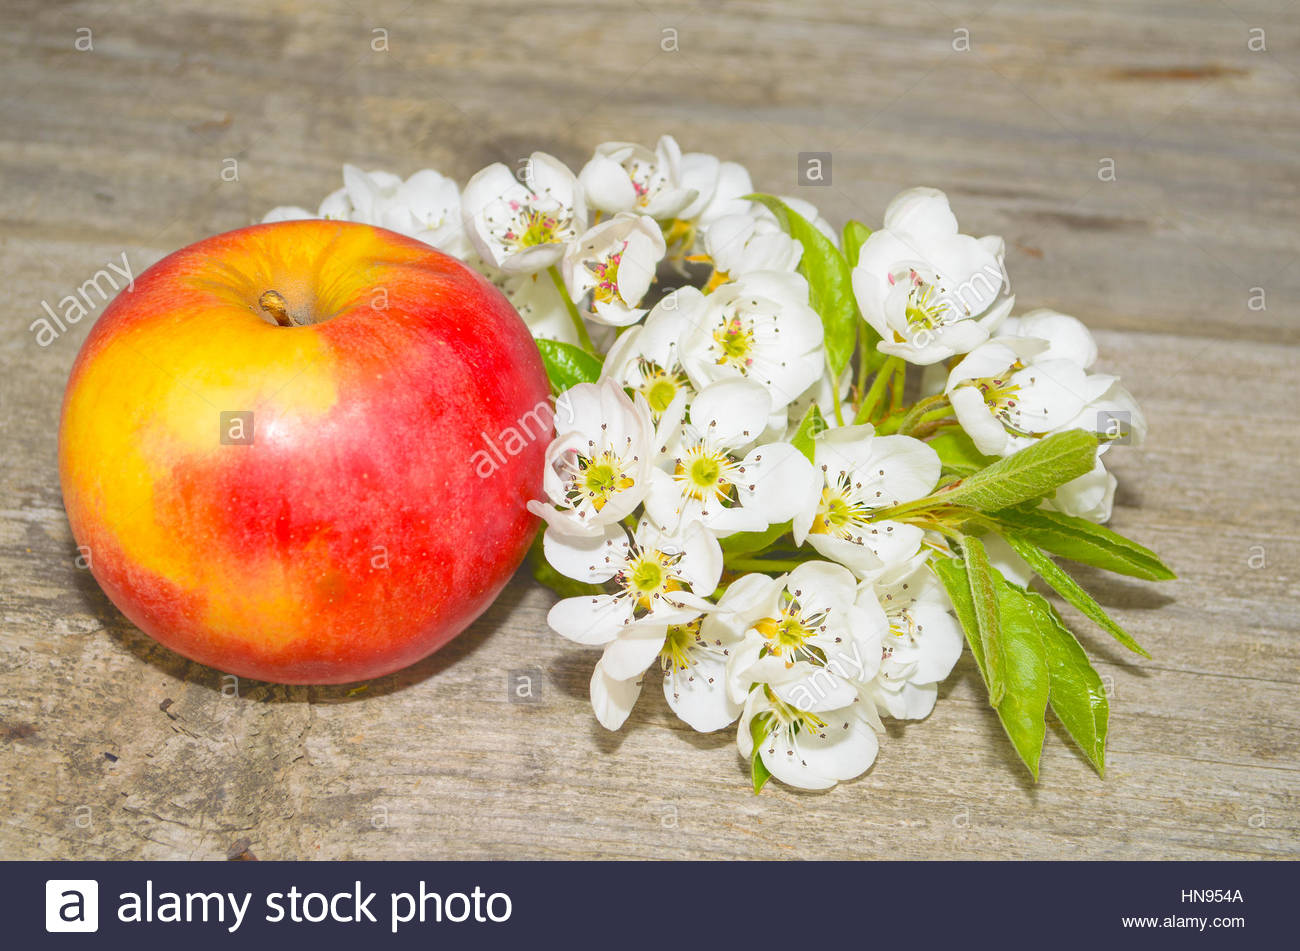 red apple and apple flowers on the old wooden background - Stock Image